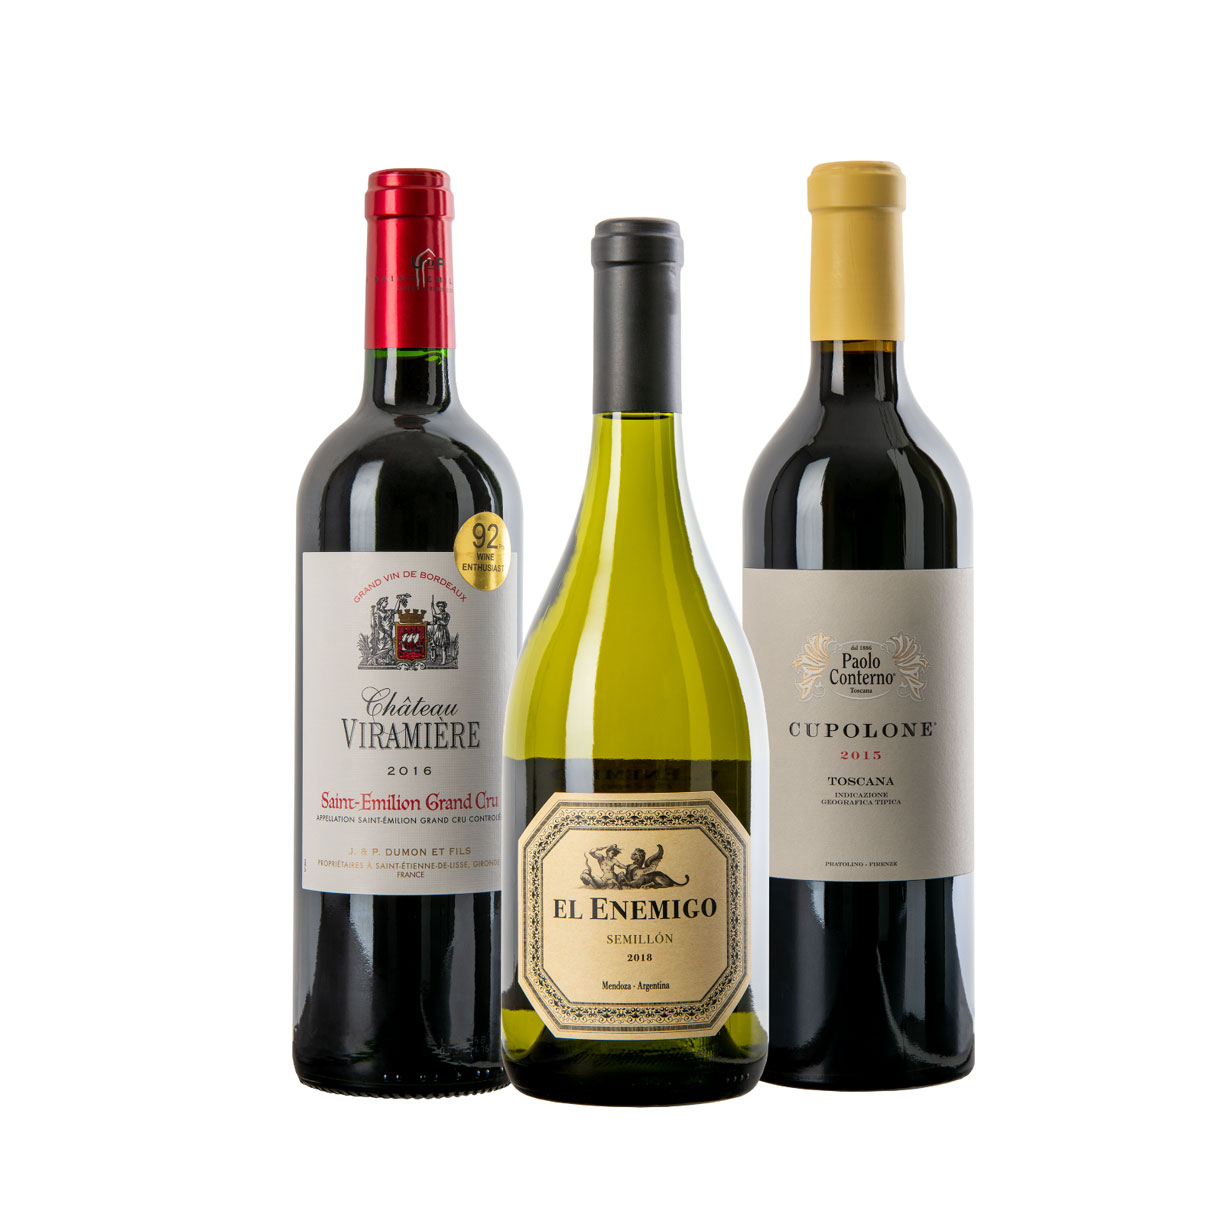 Three premium bottles of wine from past WineCollective subscription packs.